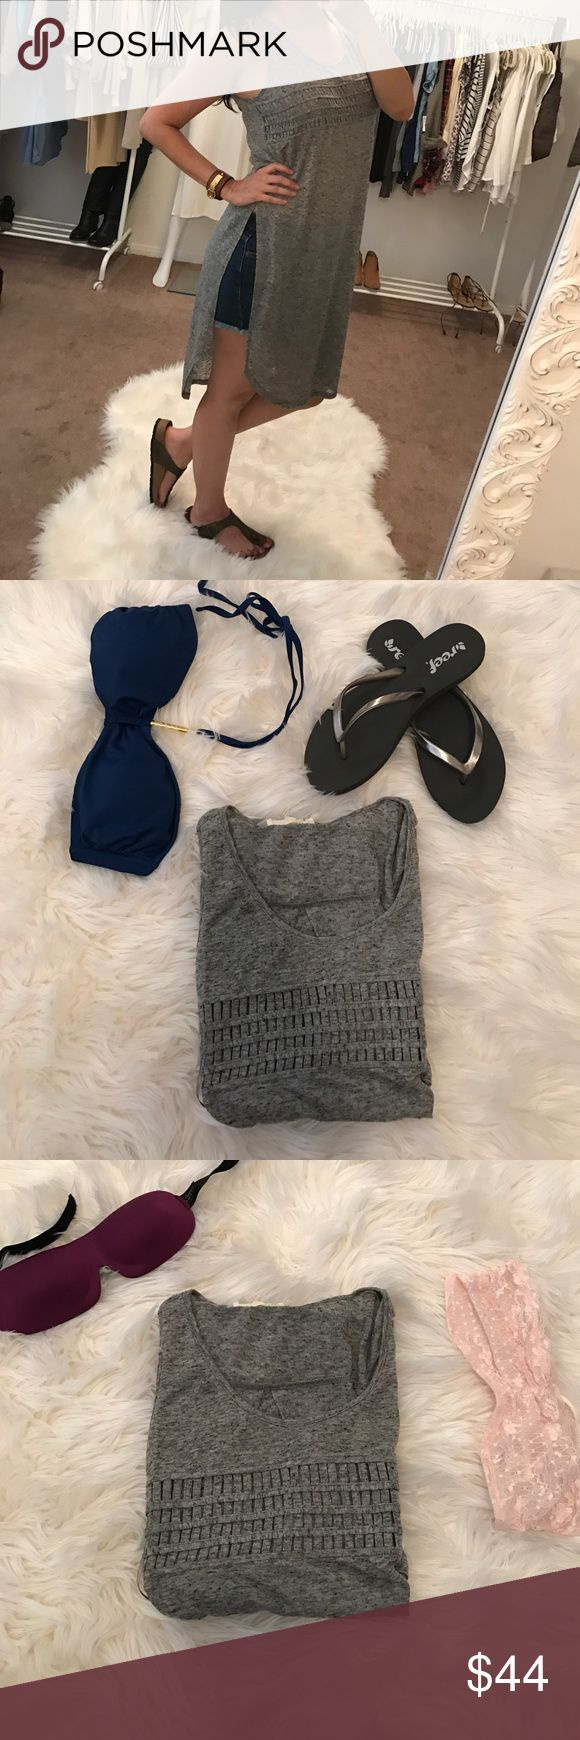 Versatile Grey Cut Out Tunic Versatile Cut Out Tunic.  Love the versatility of this tunic.  Wear it over shorts, as a sexy nighty or even as a swimsuit cover-up.  Very lightweight, Heather grey gorgeous cutout/braided detail on front. Tops Tunics